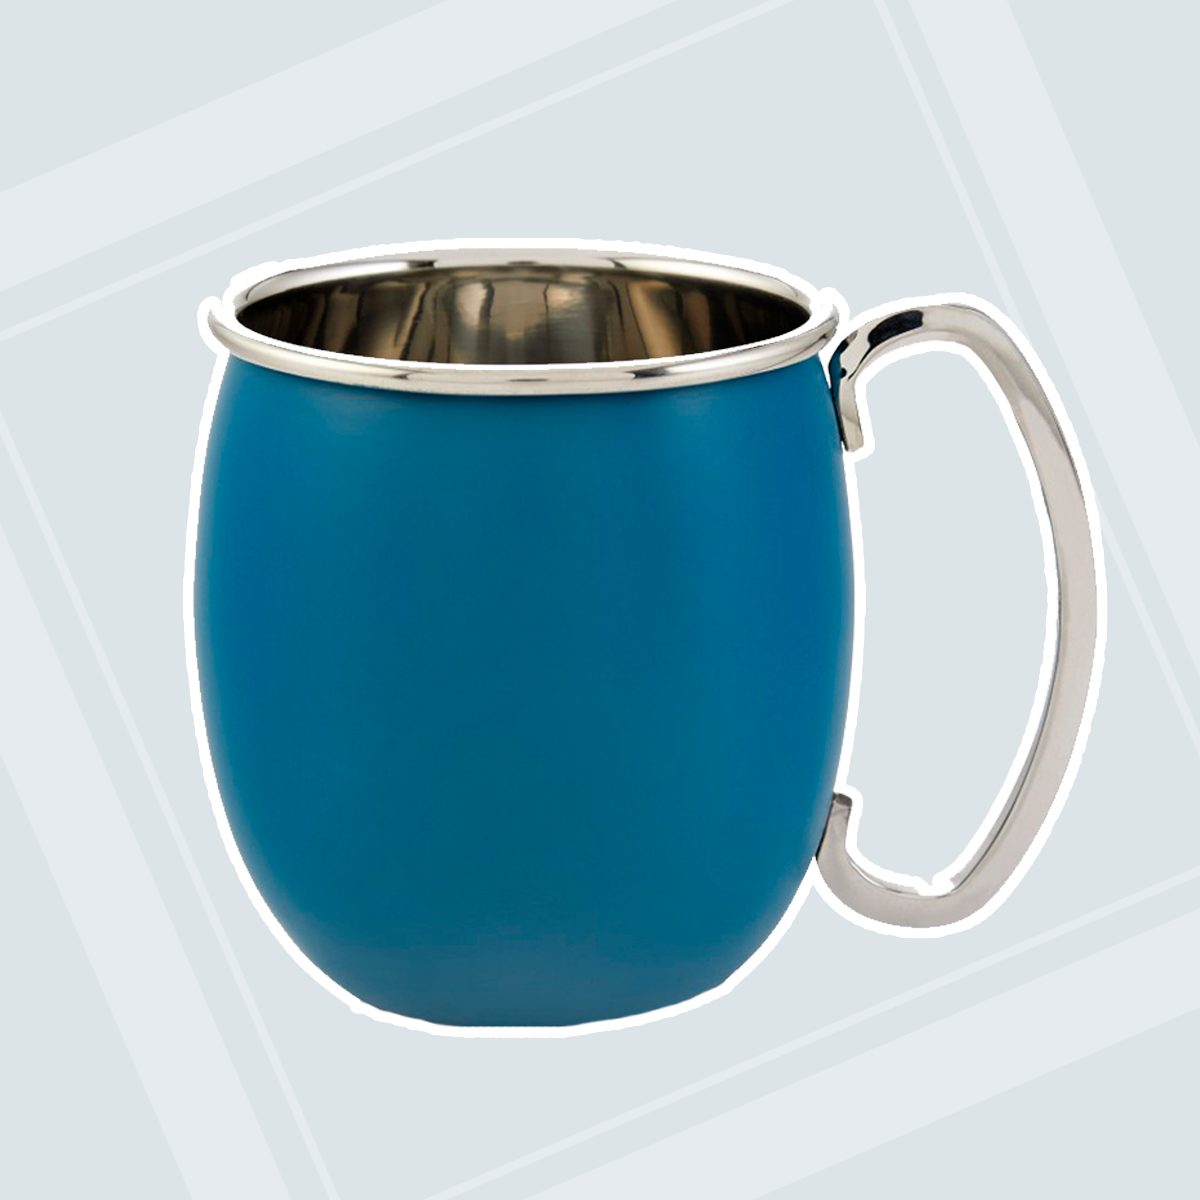 Crofton Powder Coated Moscow Mule Mug Teal